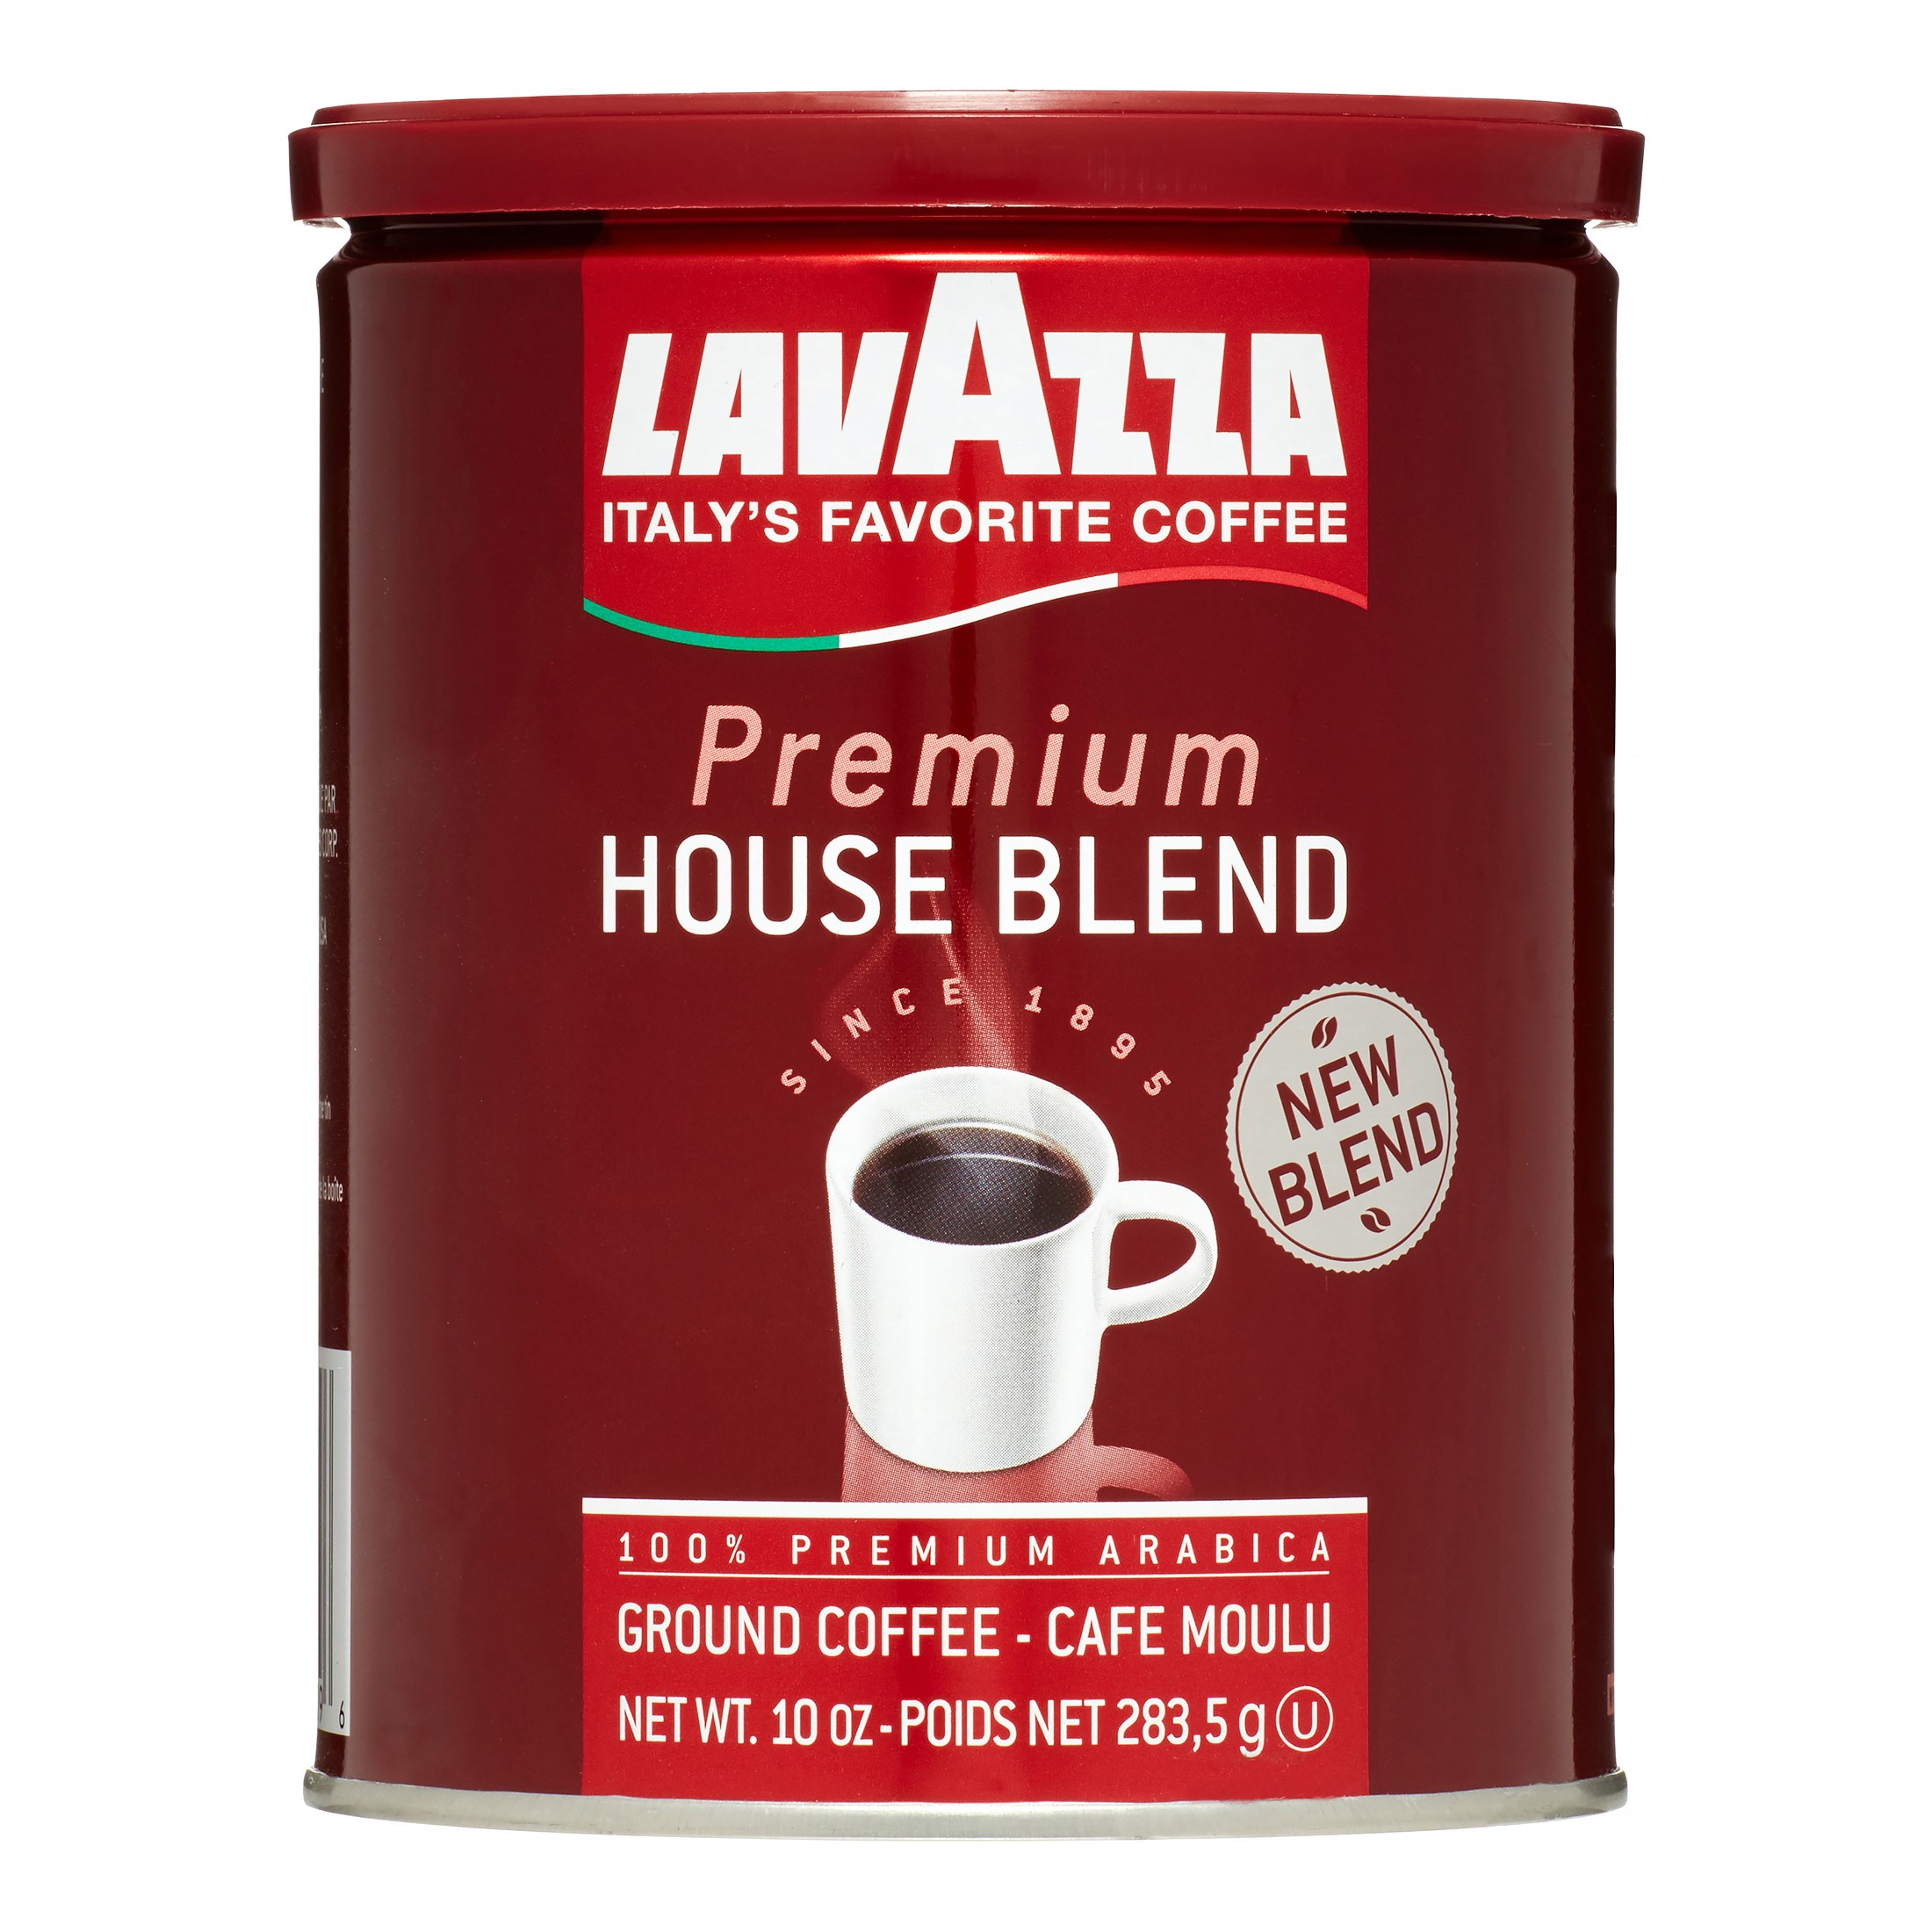 Lavazza Premium House Blend 100% Premium Arabica Ground Coffee, 10.0 OZ